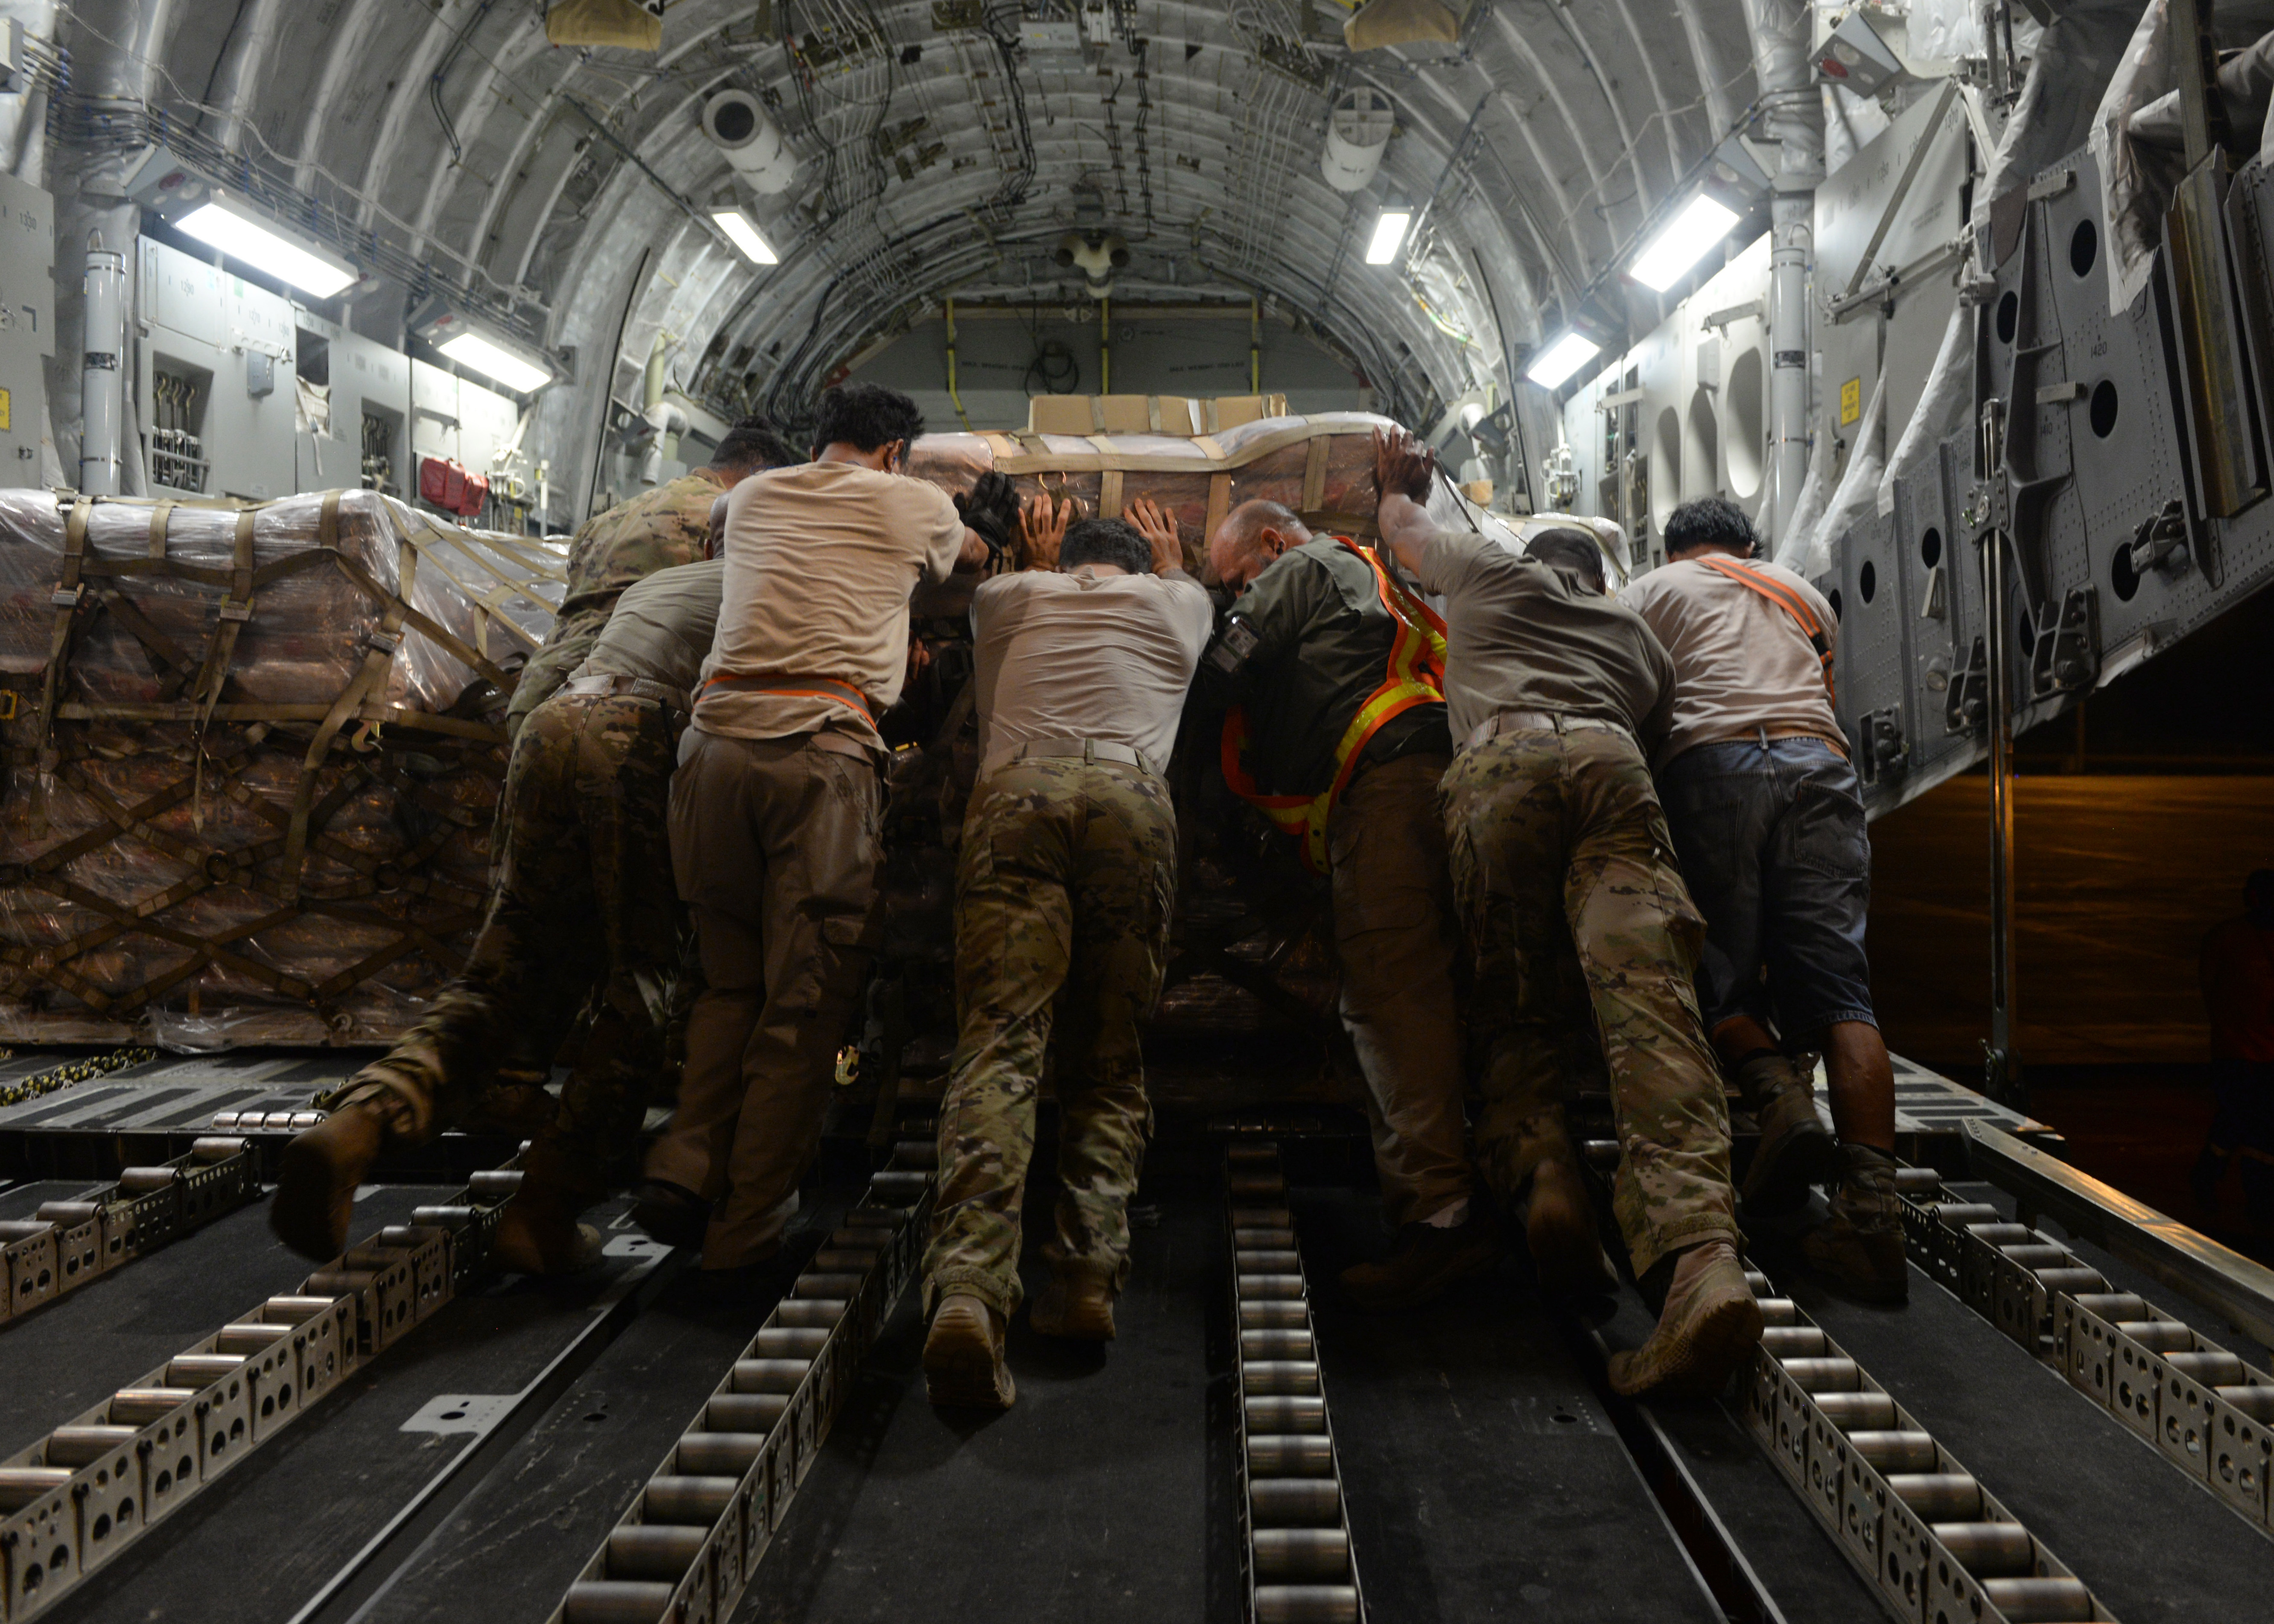 Department of Defense personnel load a U.S. Agency for International Development (USAID) food pallet onto a U.S. Air Force C-17 Globemaster III, assigned to Joint Base Lewis-McChord, Washington, supporting Combined Joint Task Force-Horn of Africa (CJTF-HOA), at Camp Lemonnier, Djibouti, April 2, 2019, for the U.S. Department of Defense's (DoD) humanitarian relief effort in the Republic of Mozambique and surrounding areas following Cyclone Idai. CJTF-HOA, which is leading the DoD relief effort, transported 17,400 pounds of USAID food, a forklift, a 25K loader and palletizing equipment on the C-17 to Mozambique following a call for assistance from the USAID Disaster Assistance Response Team. (U.S. Air Force photo by Staff Sgt. Franklin R. Ramos)